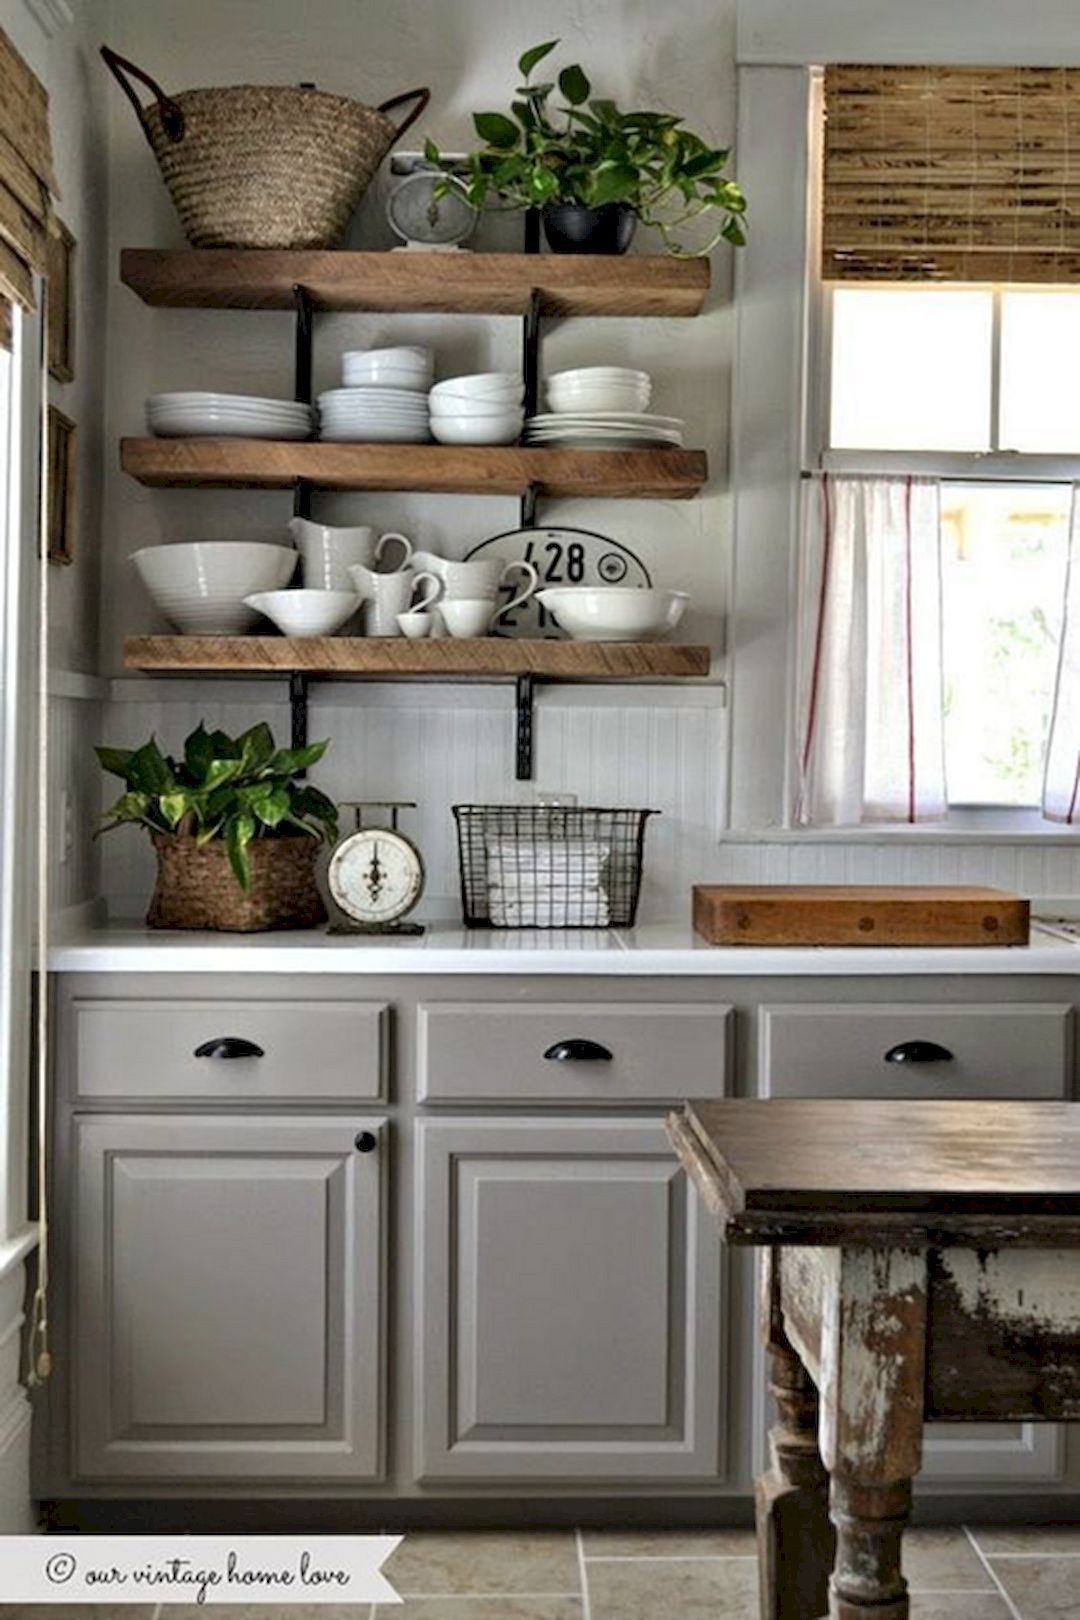 Top 42 Kitchen Design Inspirations from Joanna Gaines | Möbel